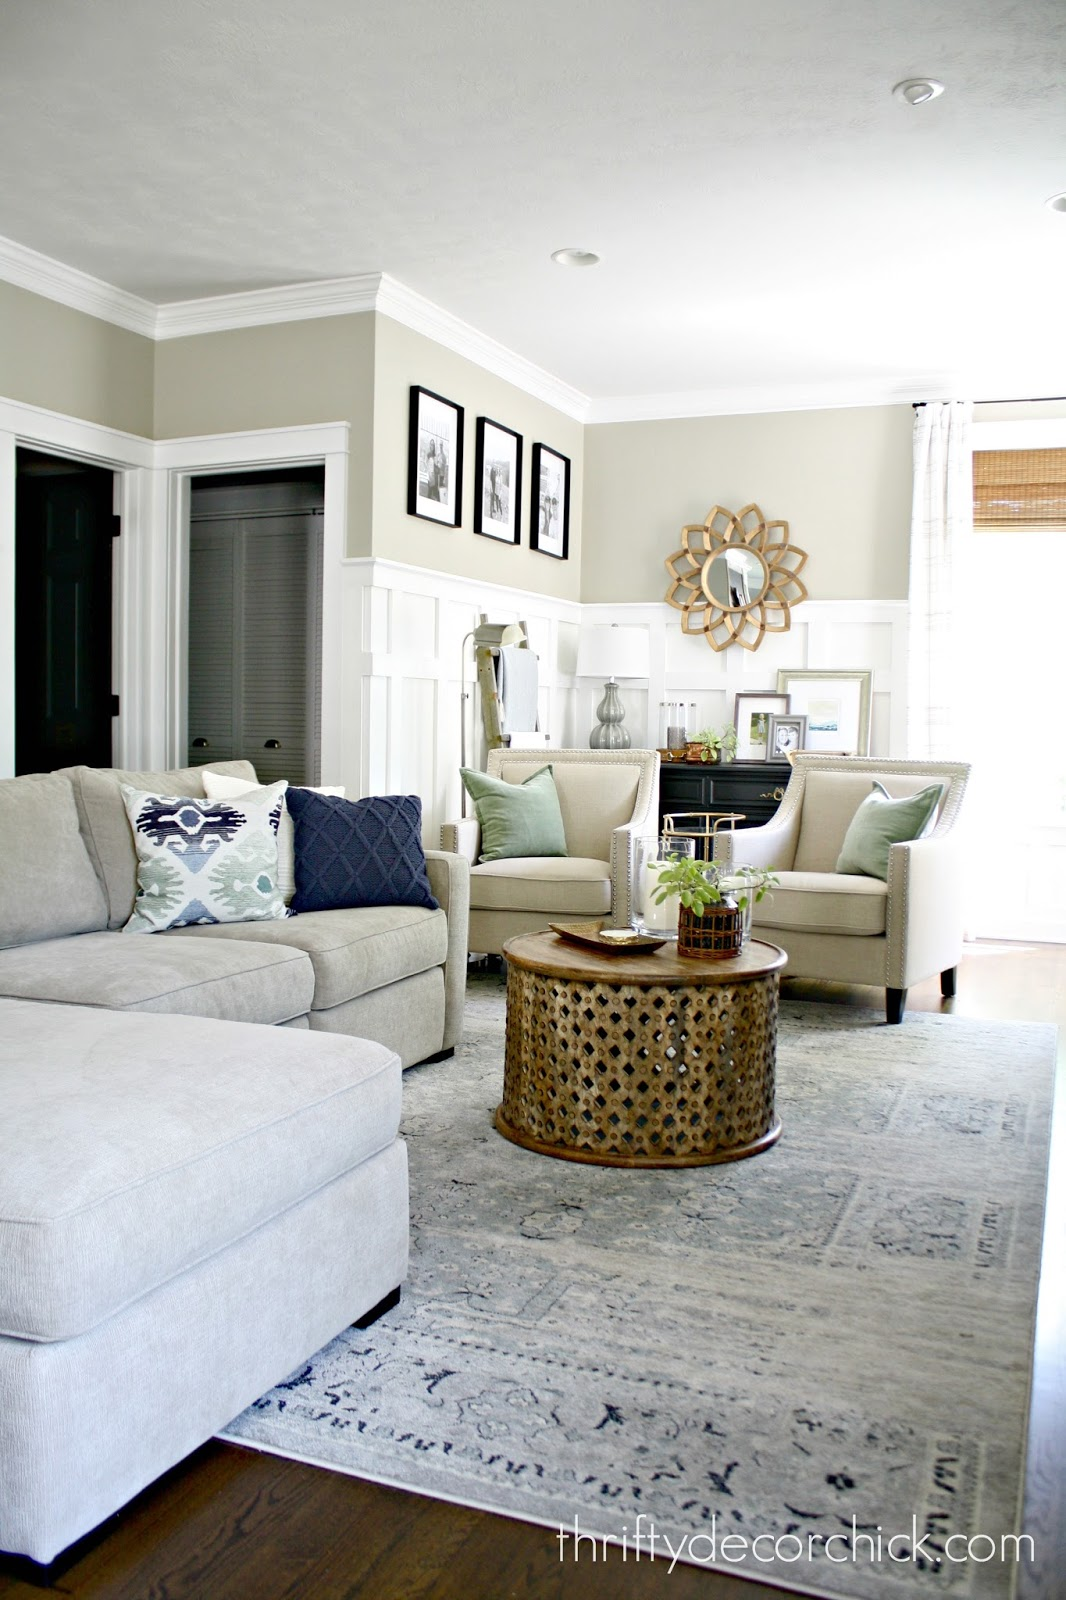 One Sofa Or Two? Help Me Decide! From Thrifty Decor Chick